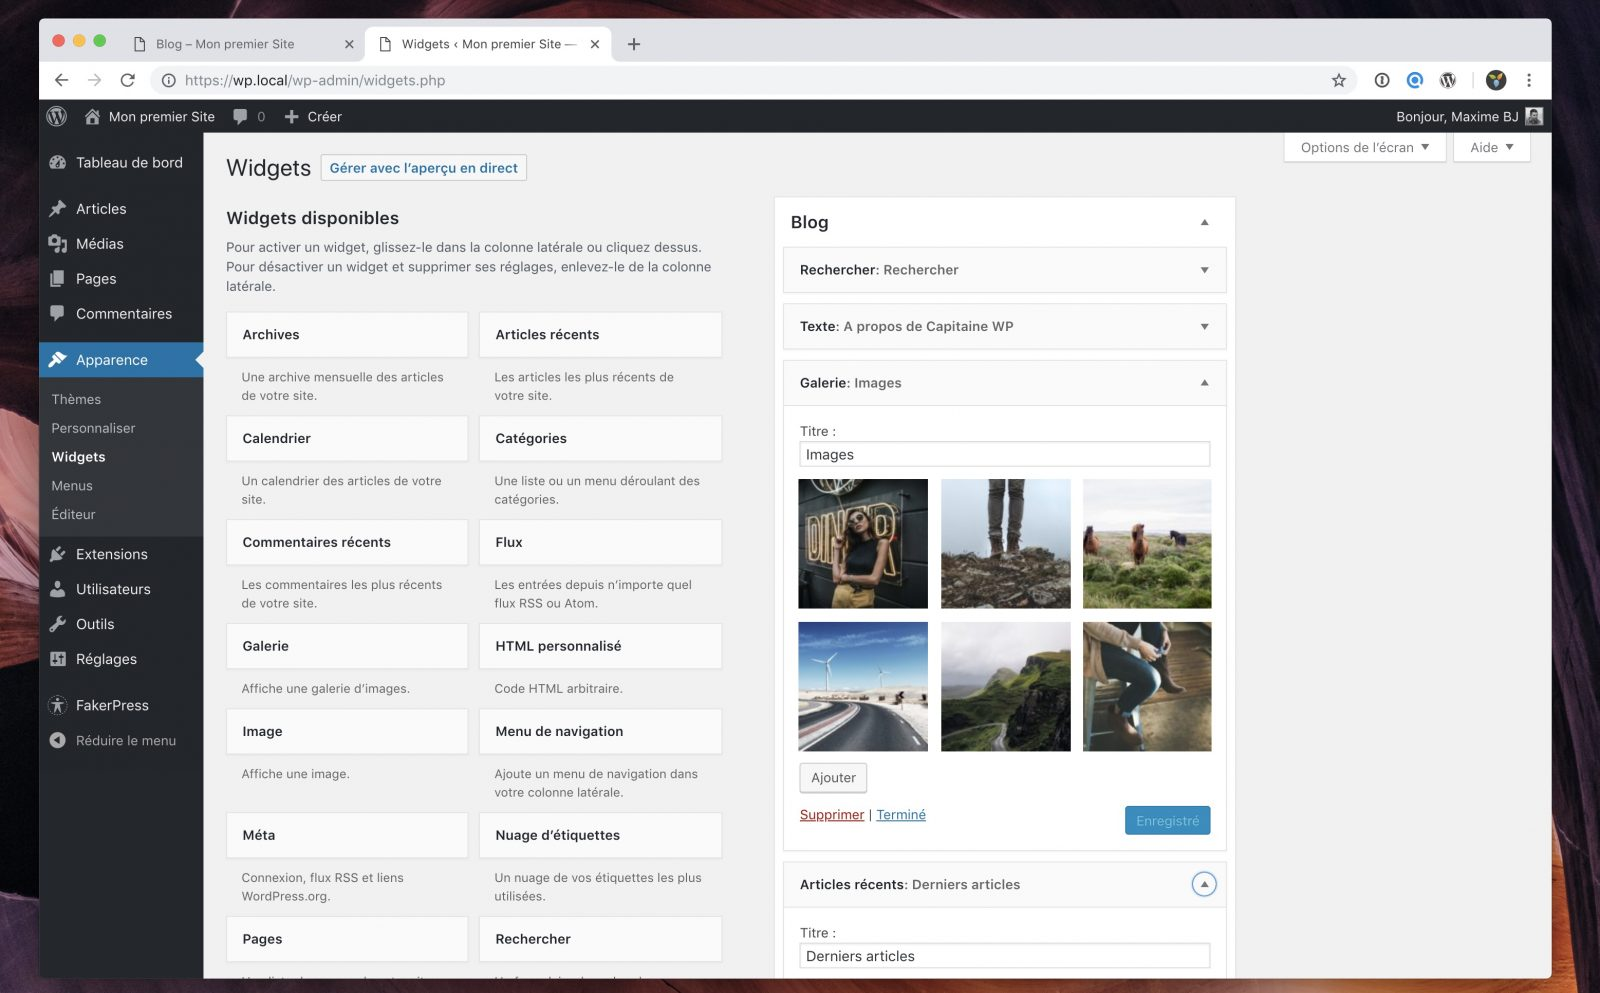 L'interface de gestion des widgets dans WordPress